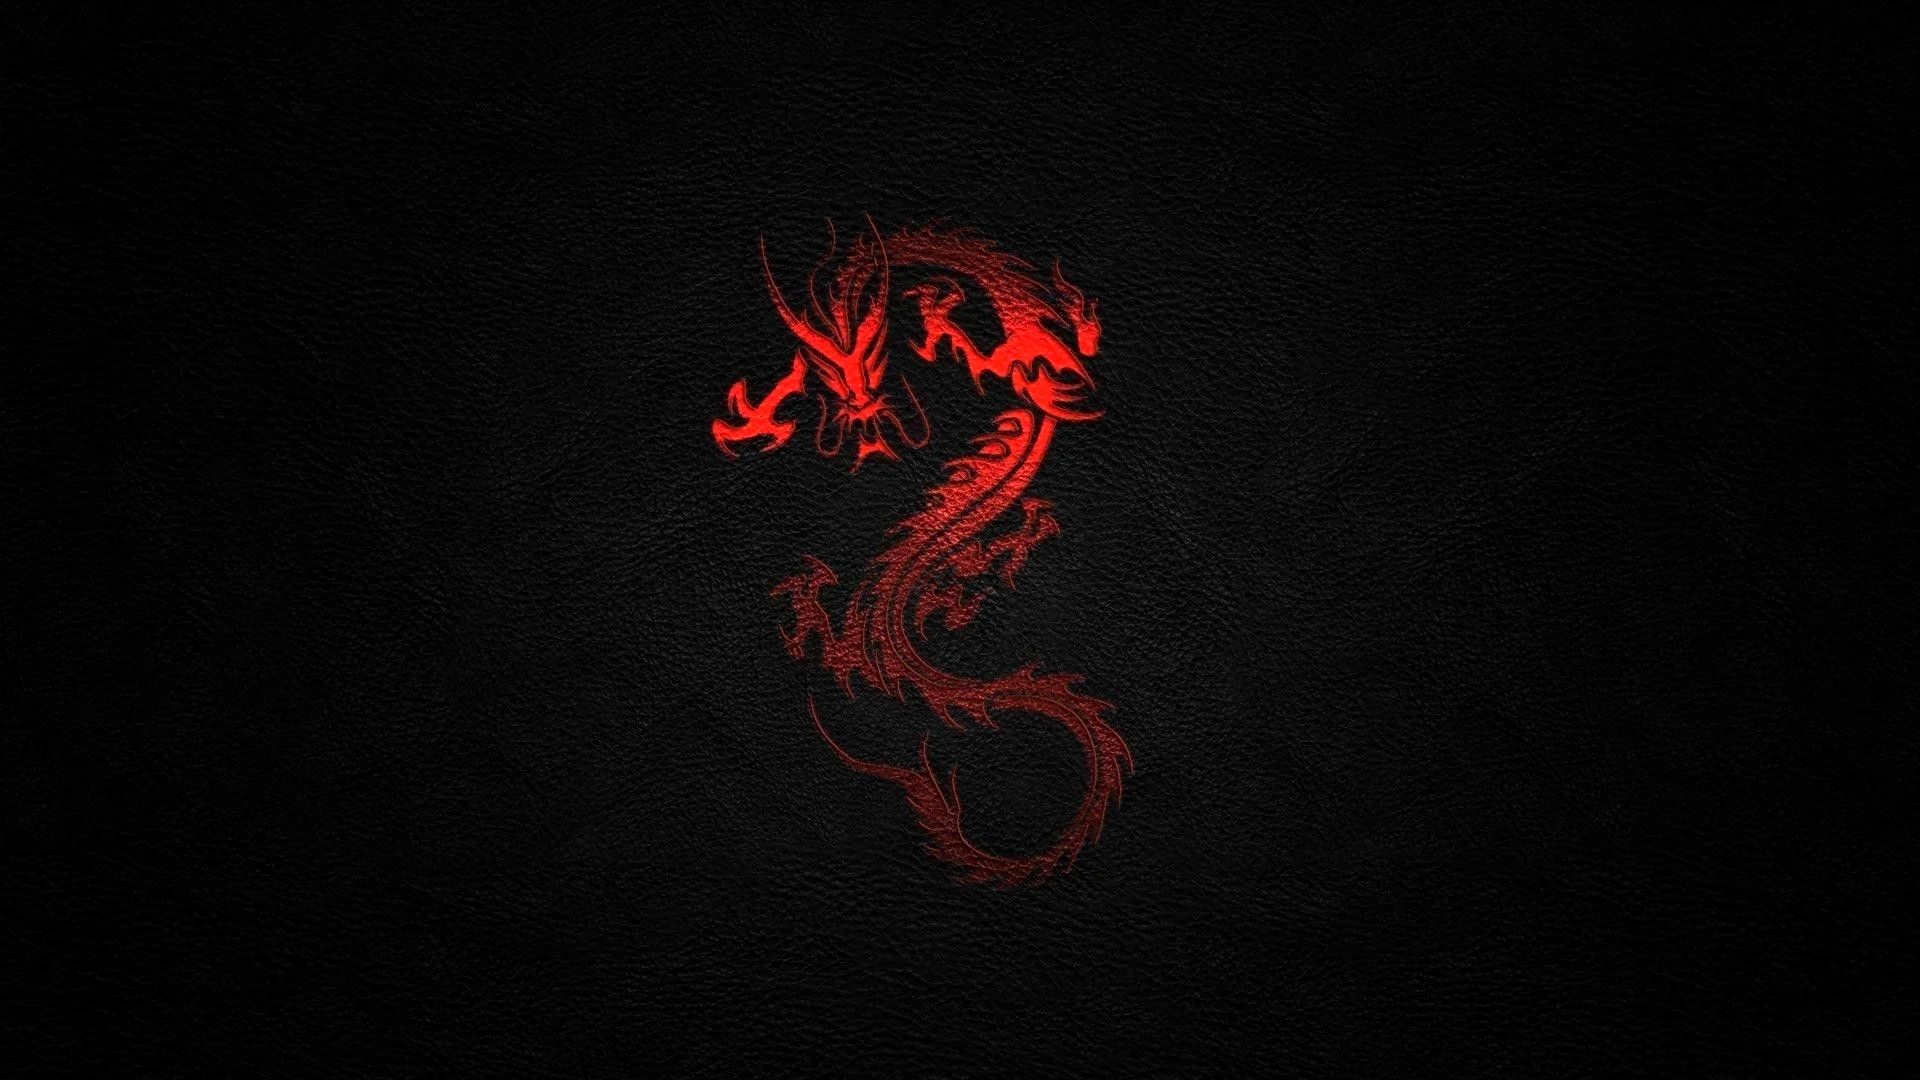 MSI Dragon Wallpaper 1600×900